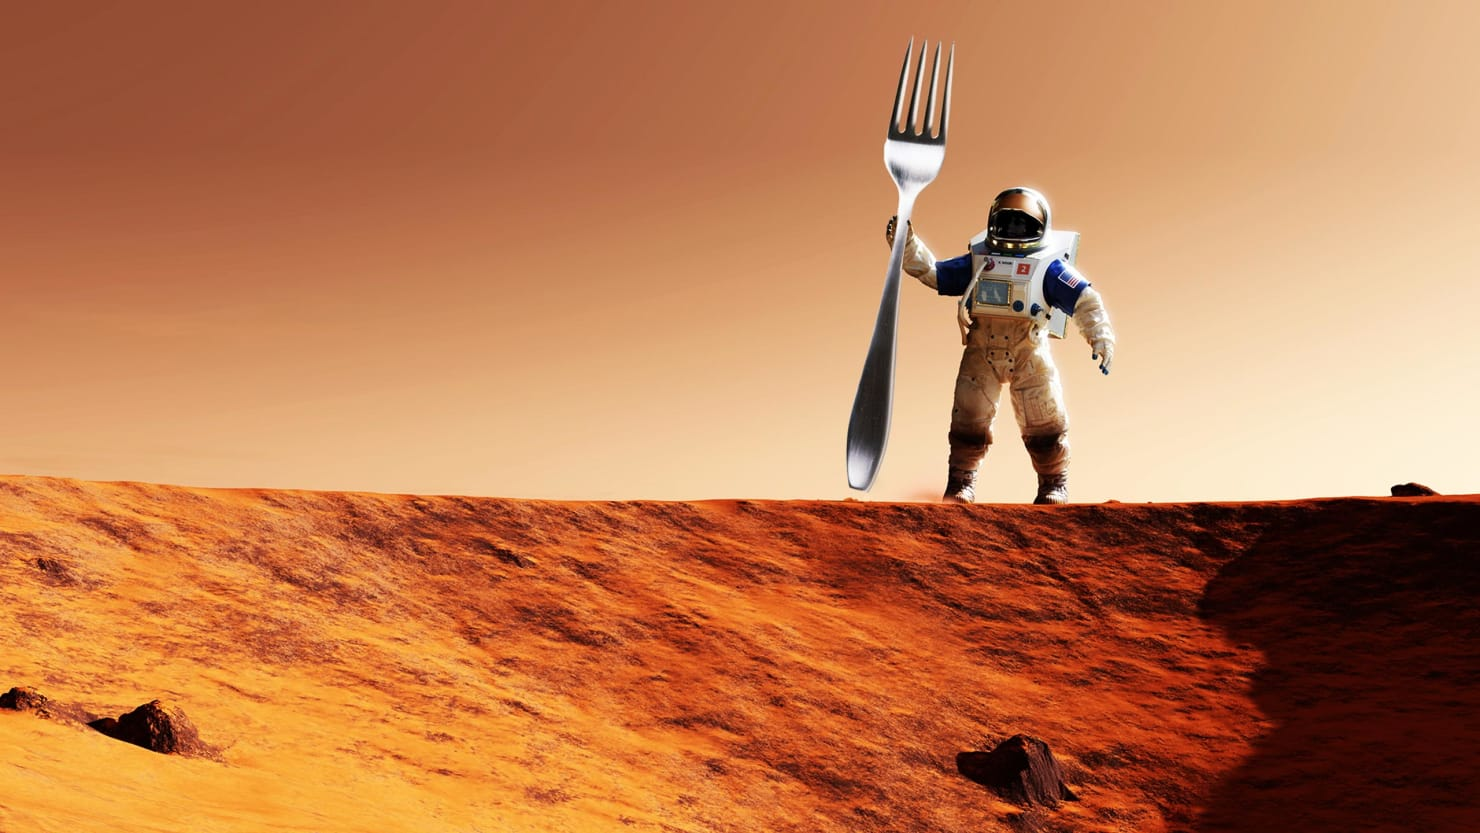 illustration of astronaut holding a fork as a pitchfork on mars red planet michelle perchonok the martian cooking boiling shelf life delivery nasa international space station living on mars